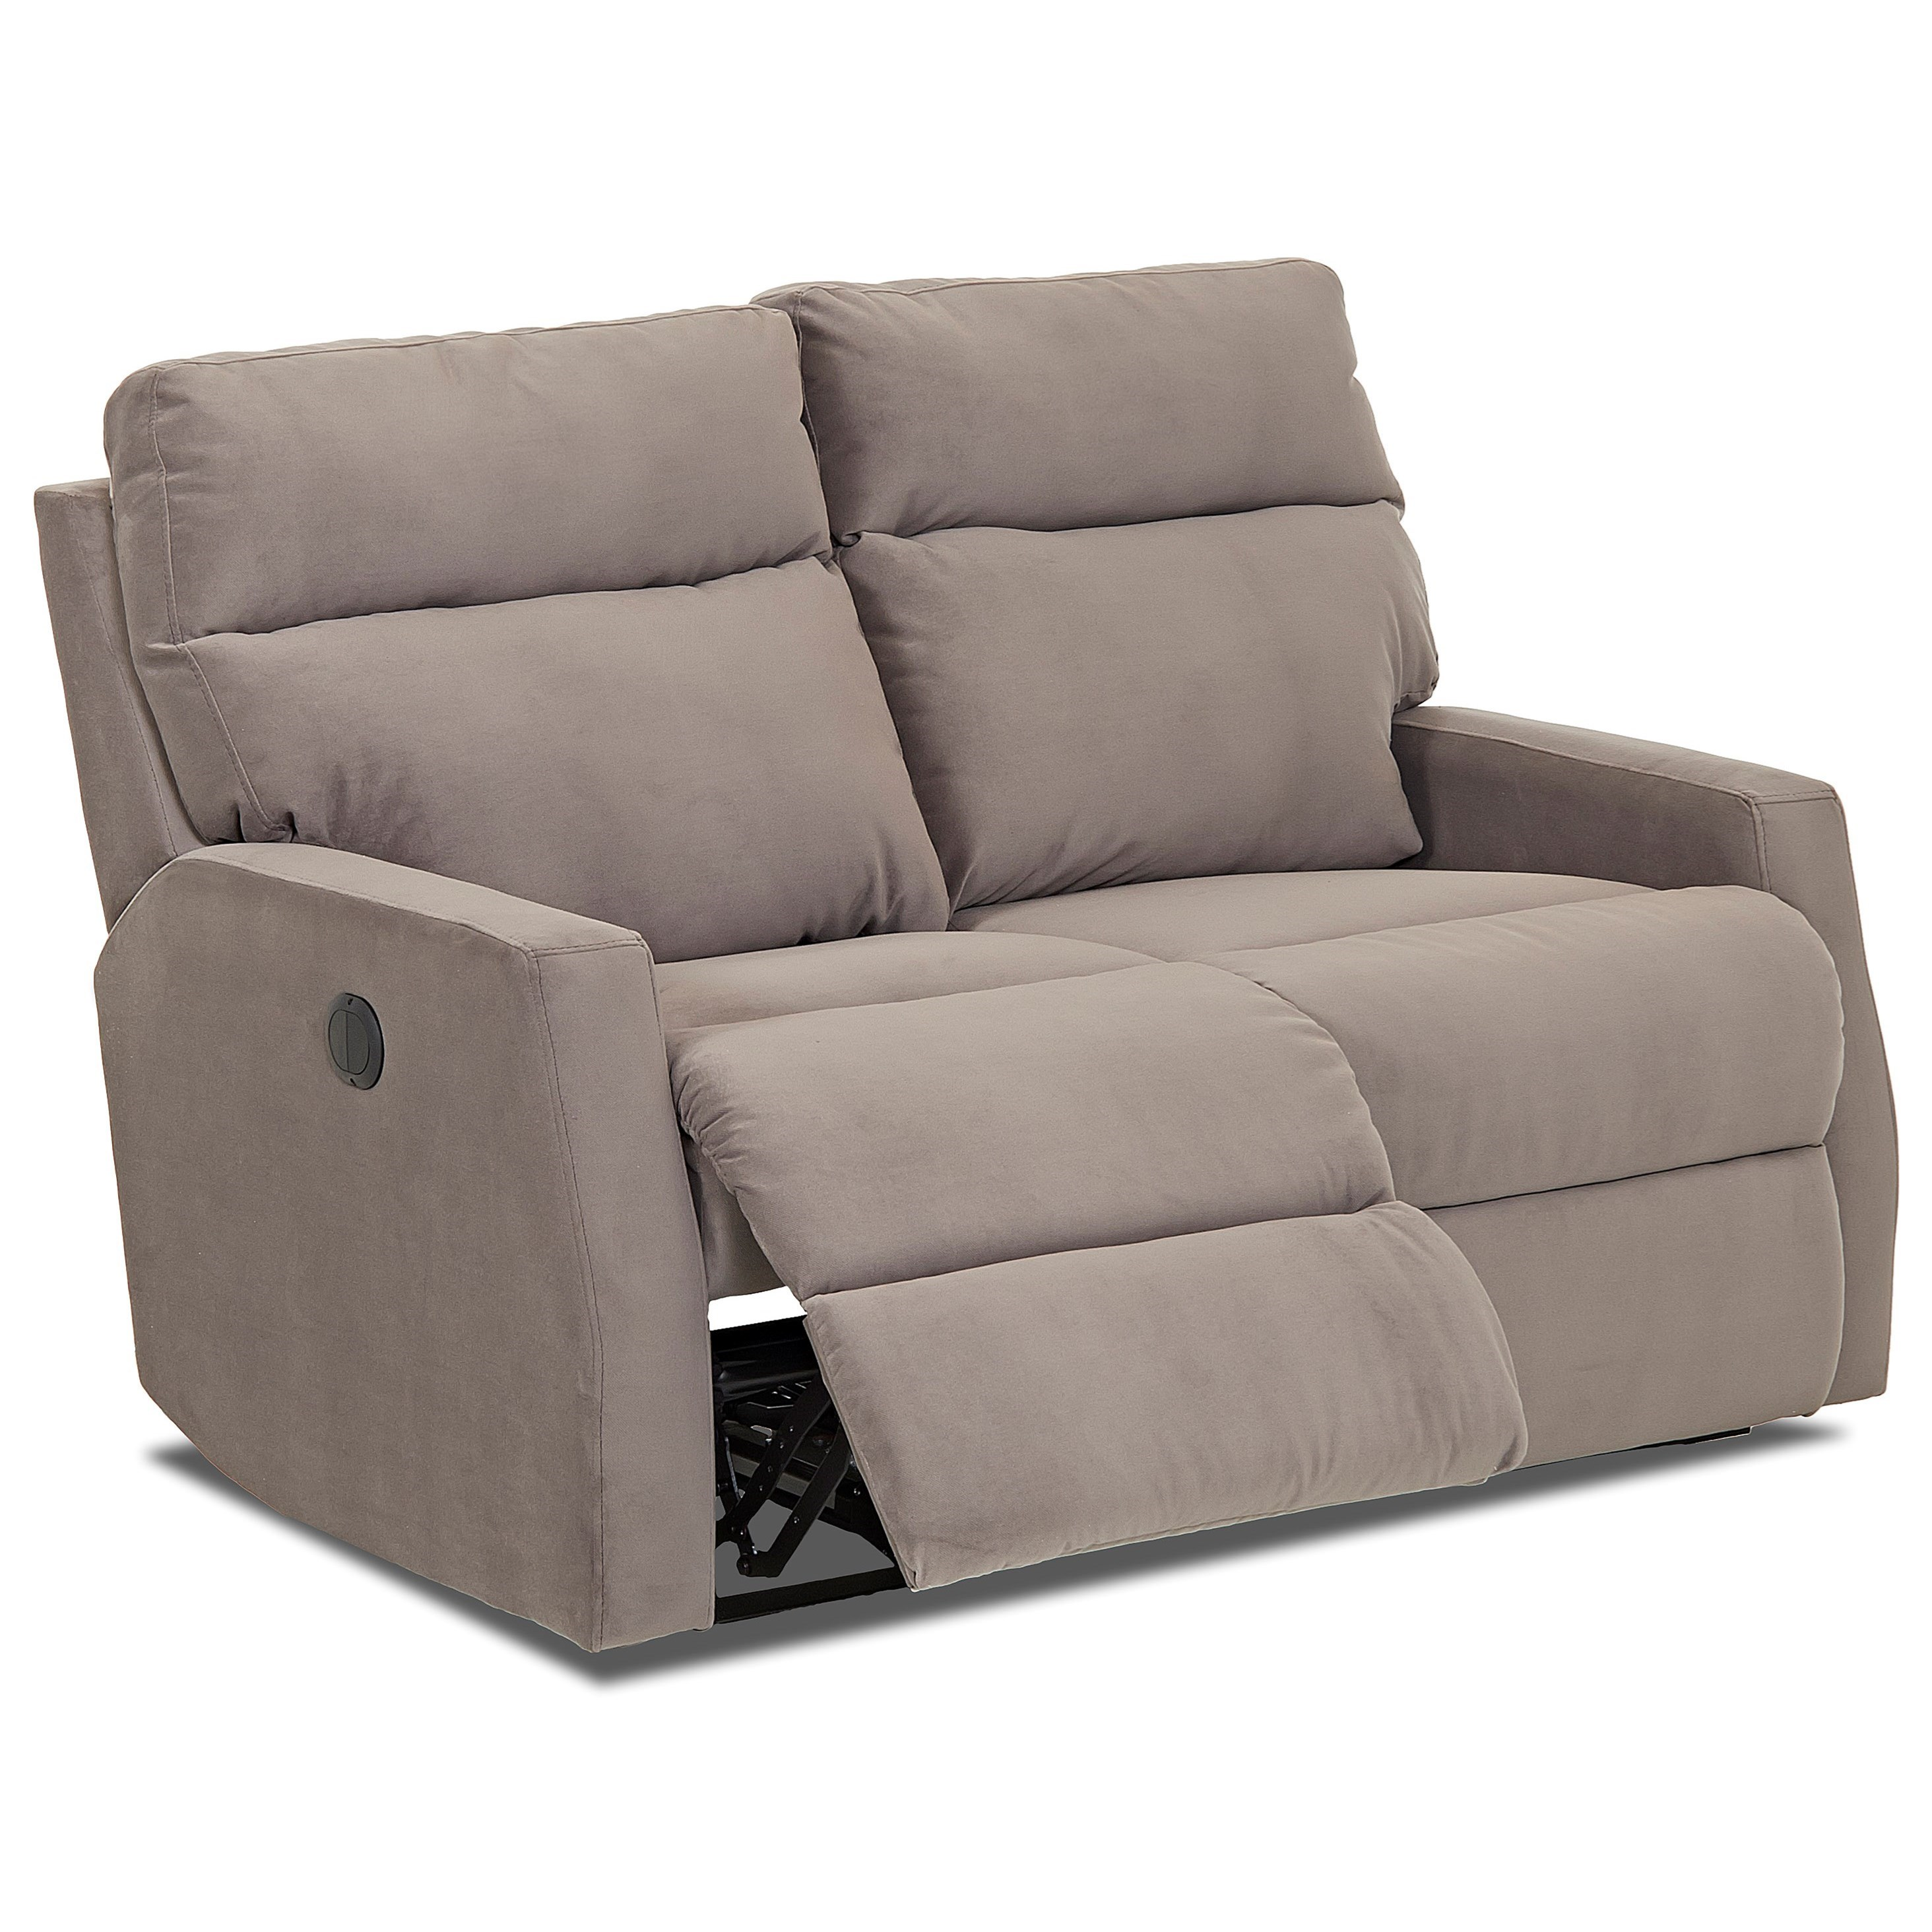 Klaussner Daphne Reclining Loveseat With Track Arms